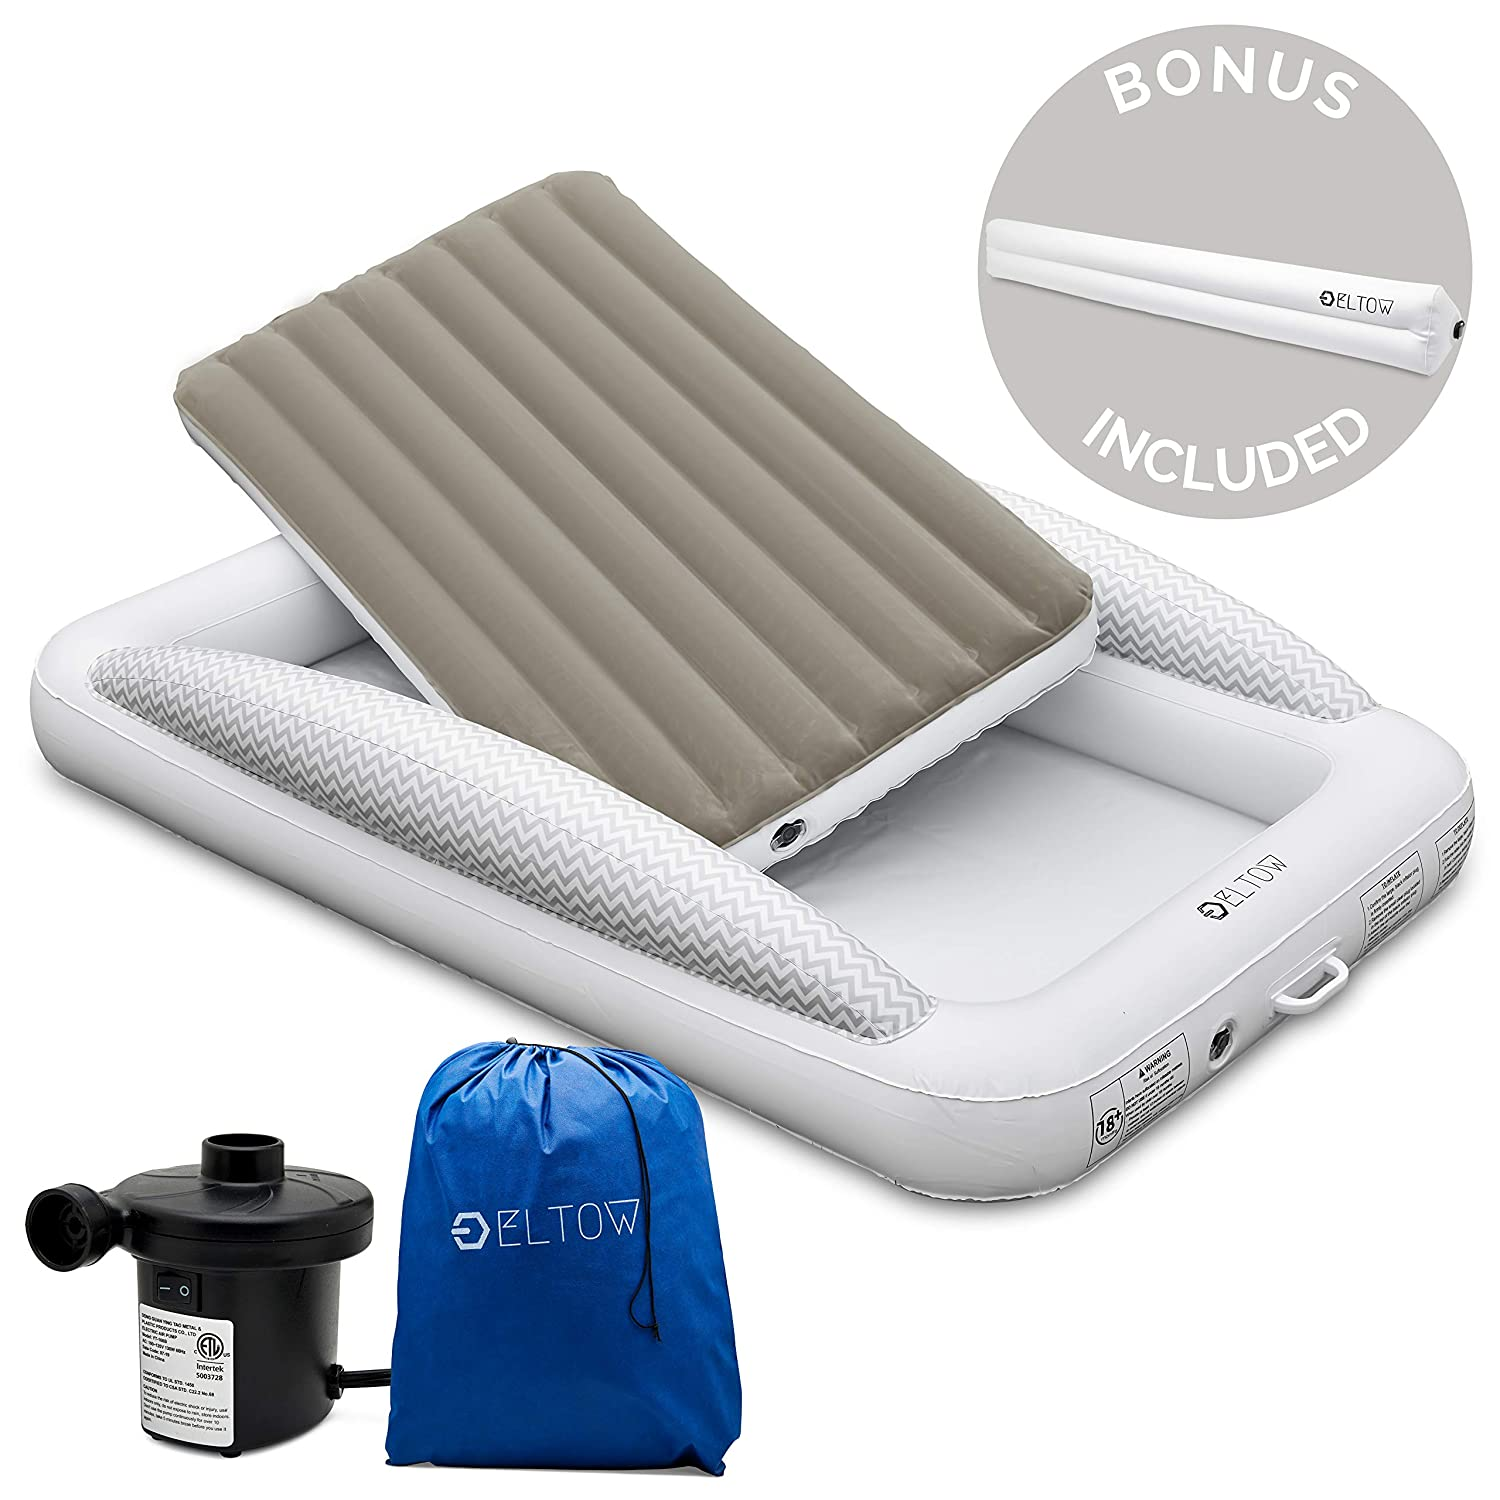 Eltow Inflatable Toddler Air Mattress Bed With Safety Bumper – Portable, Modern Travel Bed, Cot for Toddlers – Perfect For Travel, Camping – Removable Mattress, High Speed Pump and Travel Bag Included